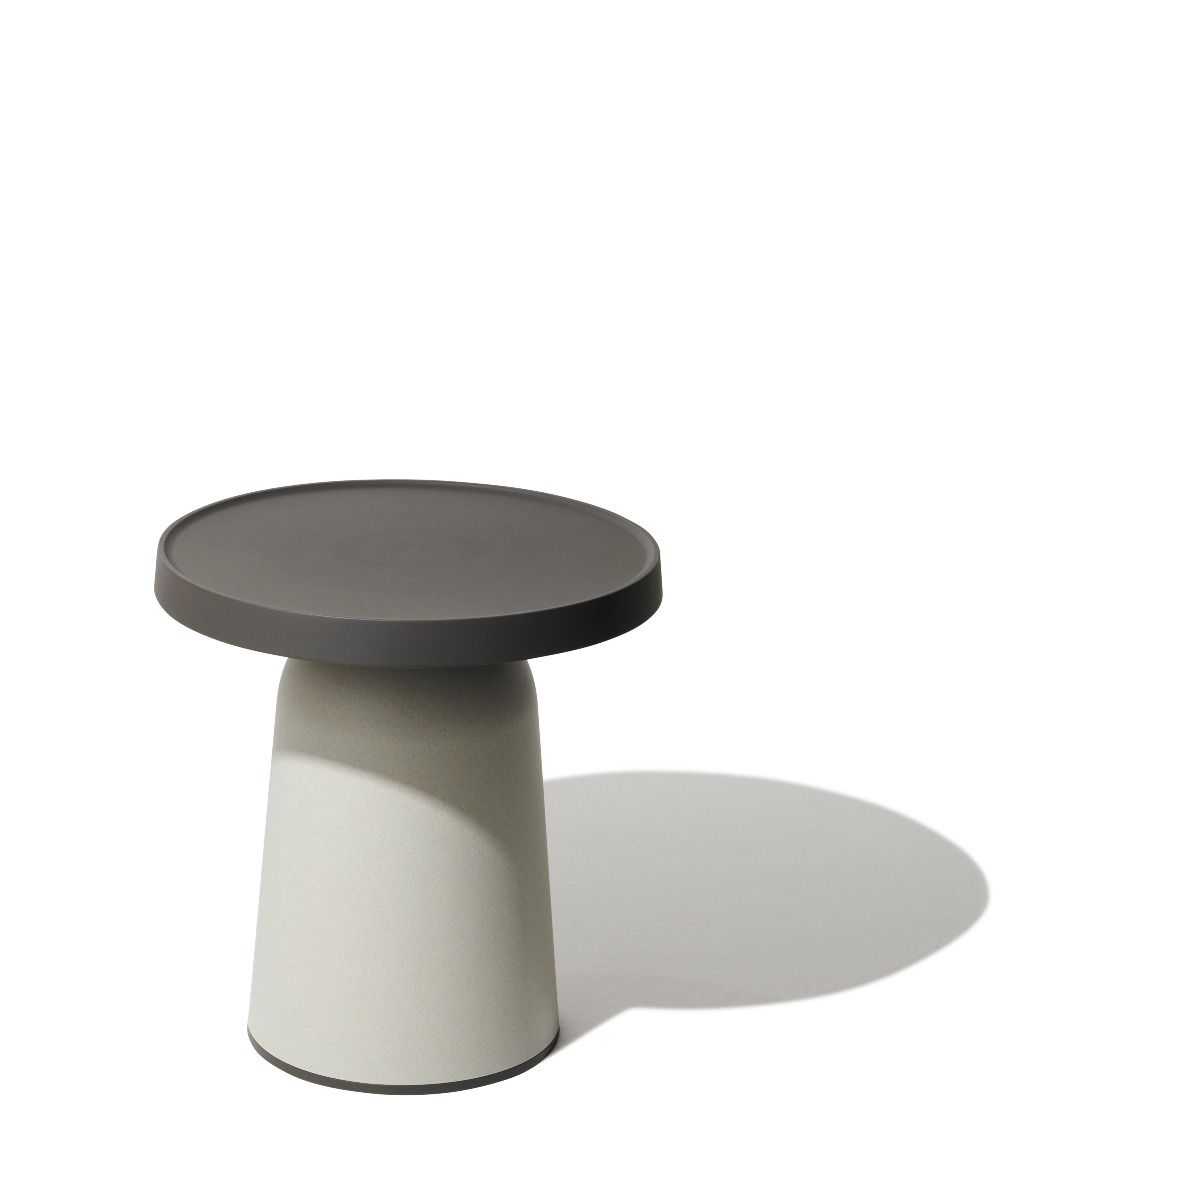 Thick Top Side Table High Shape Design Table Valet Stand